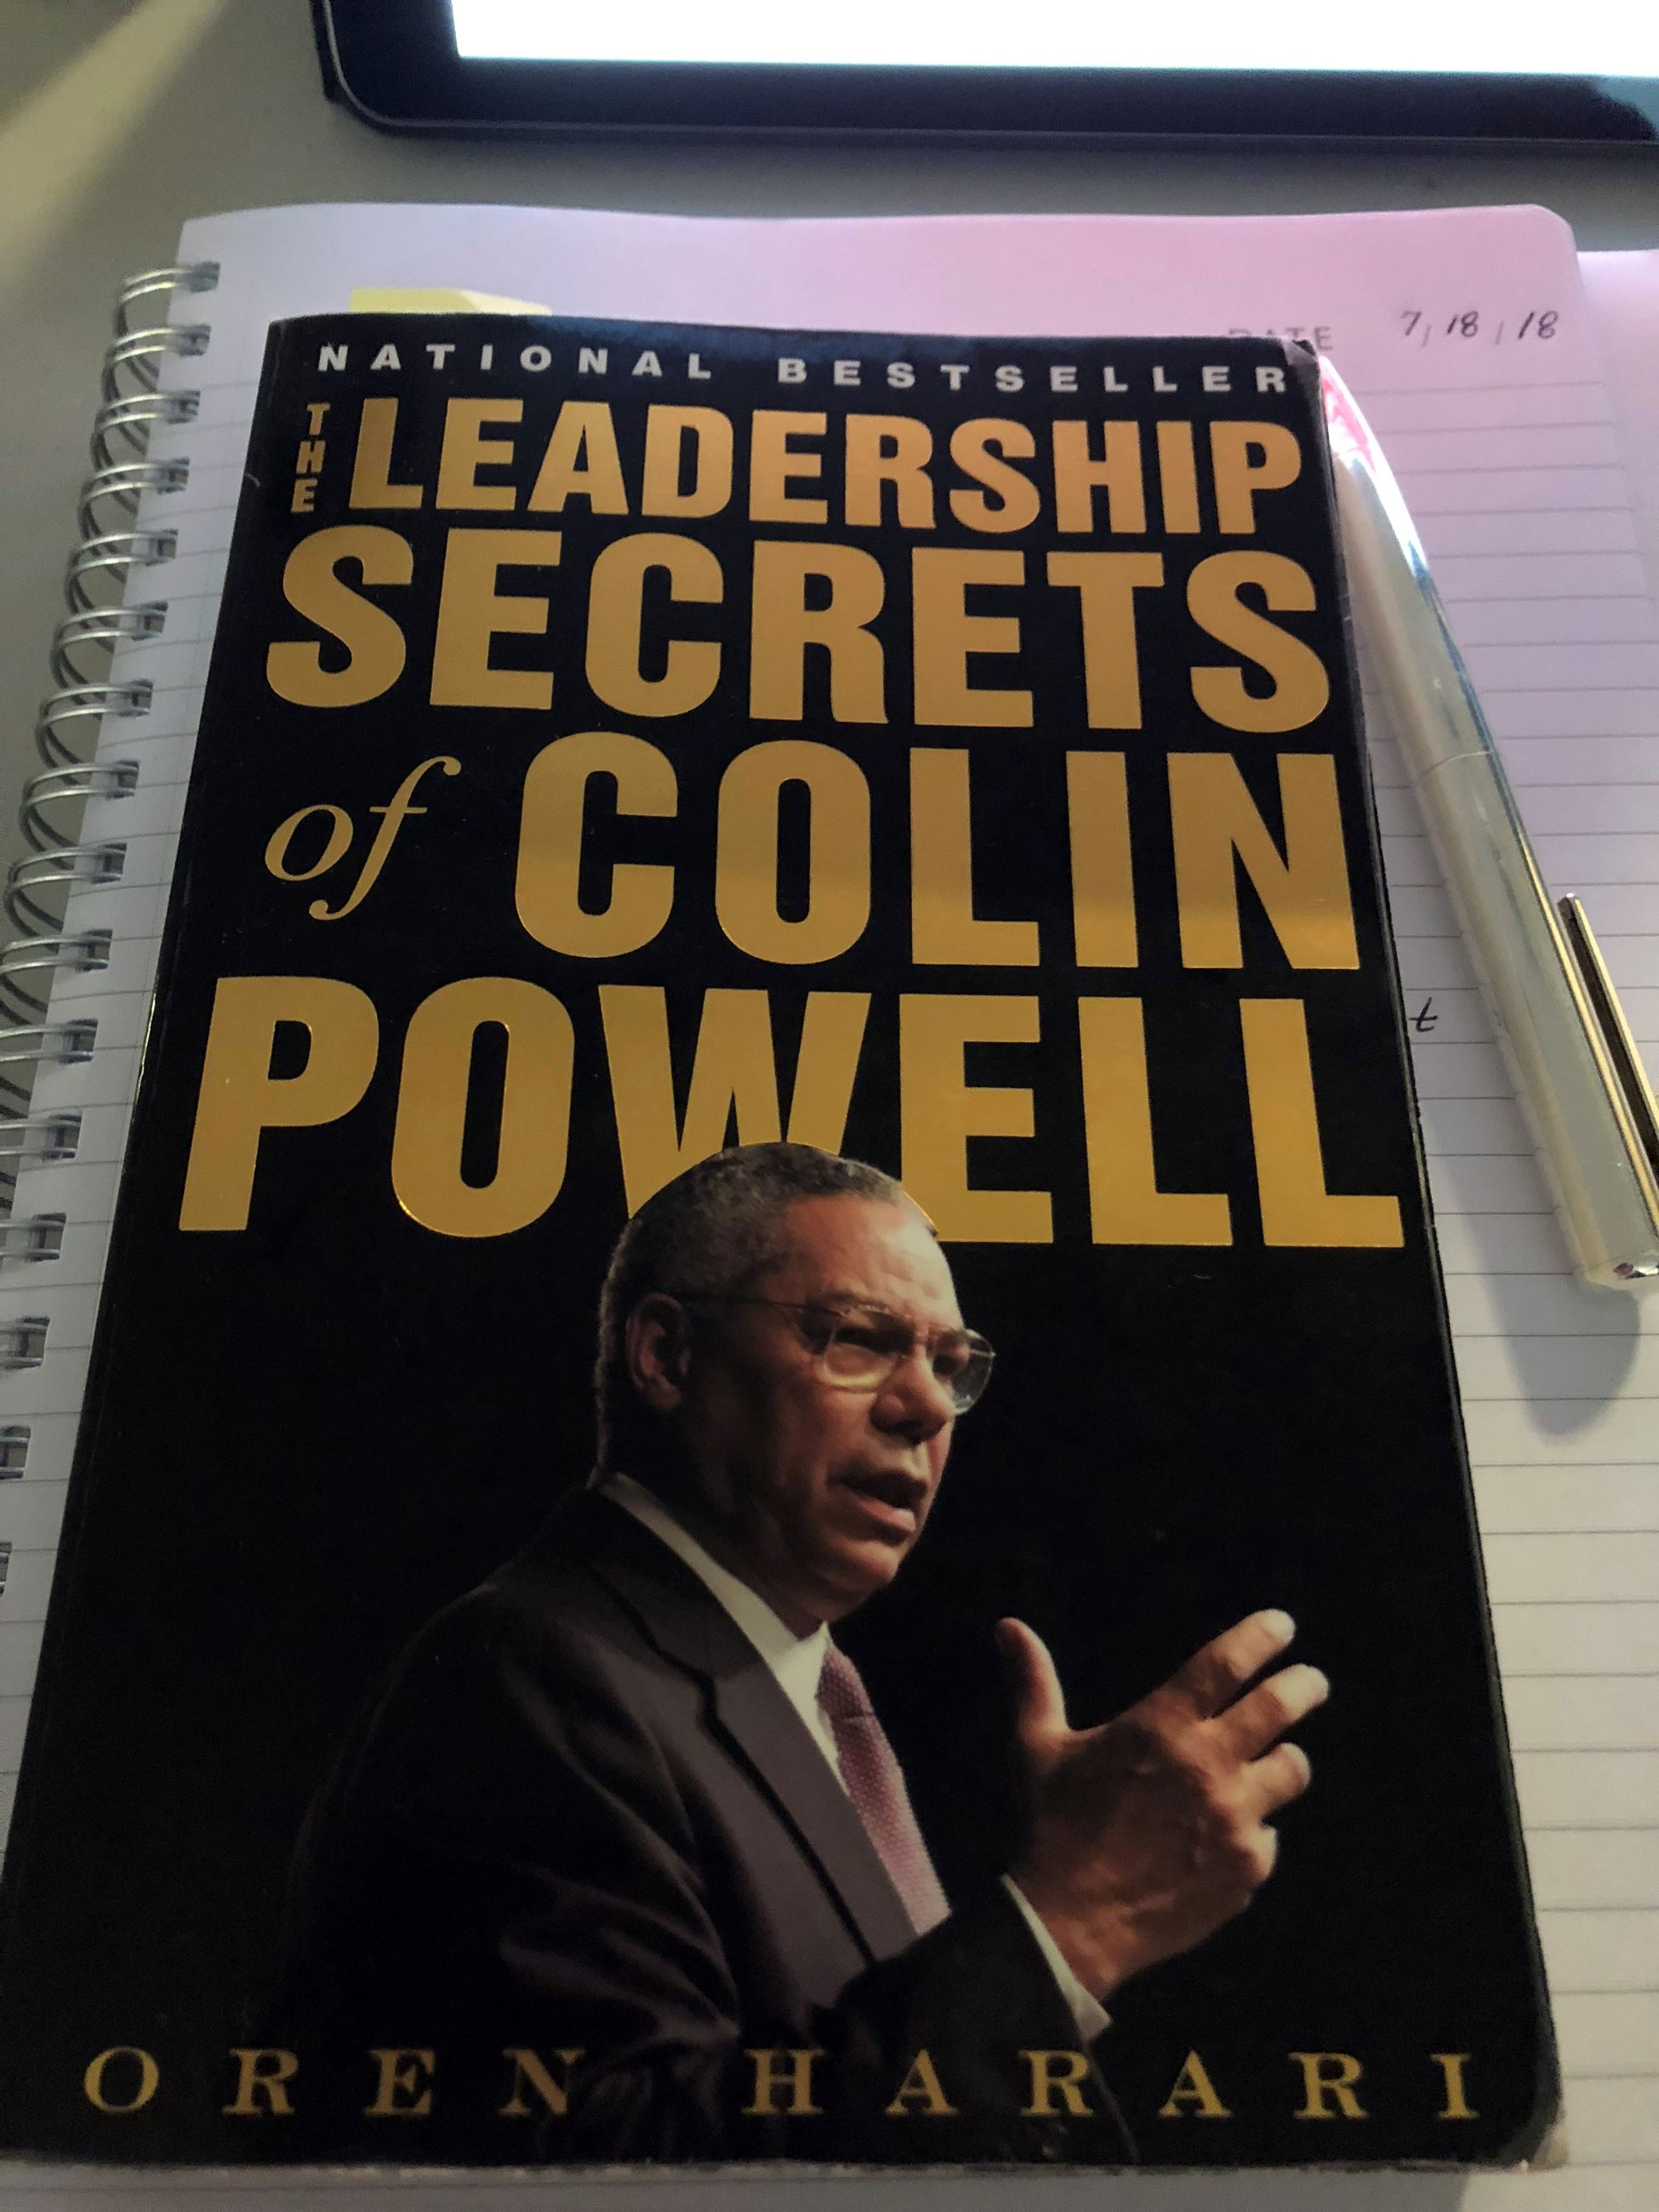 The Leadership Secrets of Colin Powell book cover